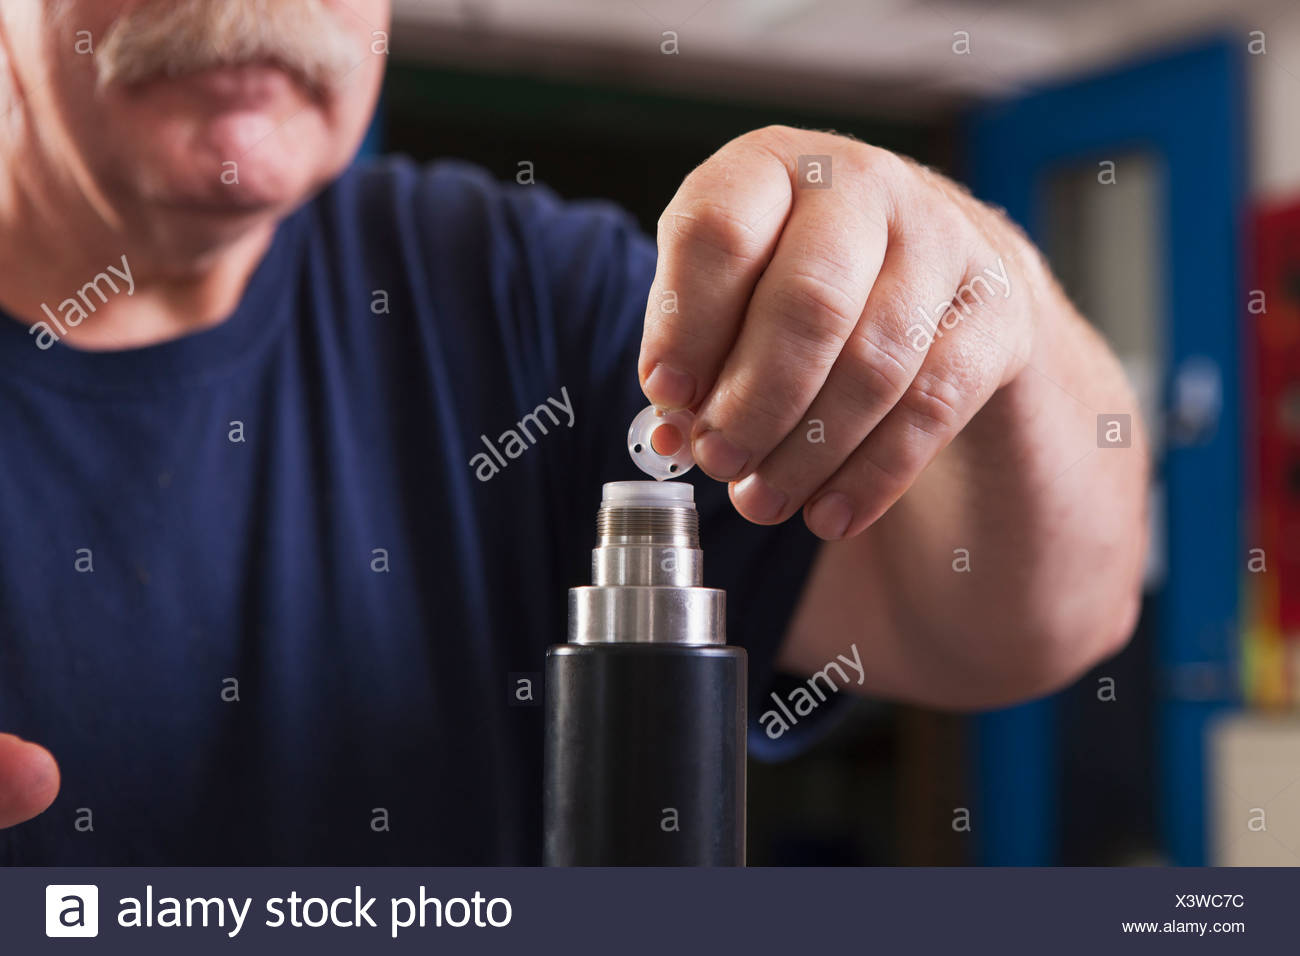 Electrochemical Stock Photos Images Alamy Integrated Circuitvintage Engineer Rebuilding An O2 Sensor Probe In A Laboratory Image